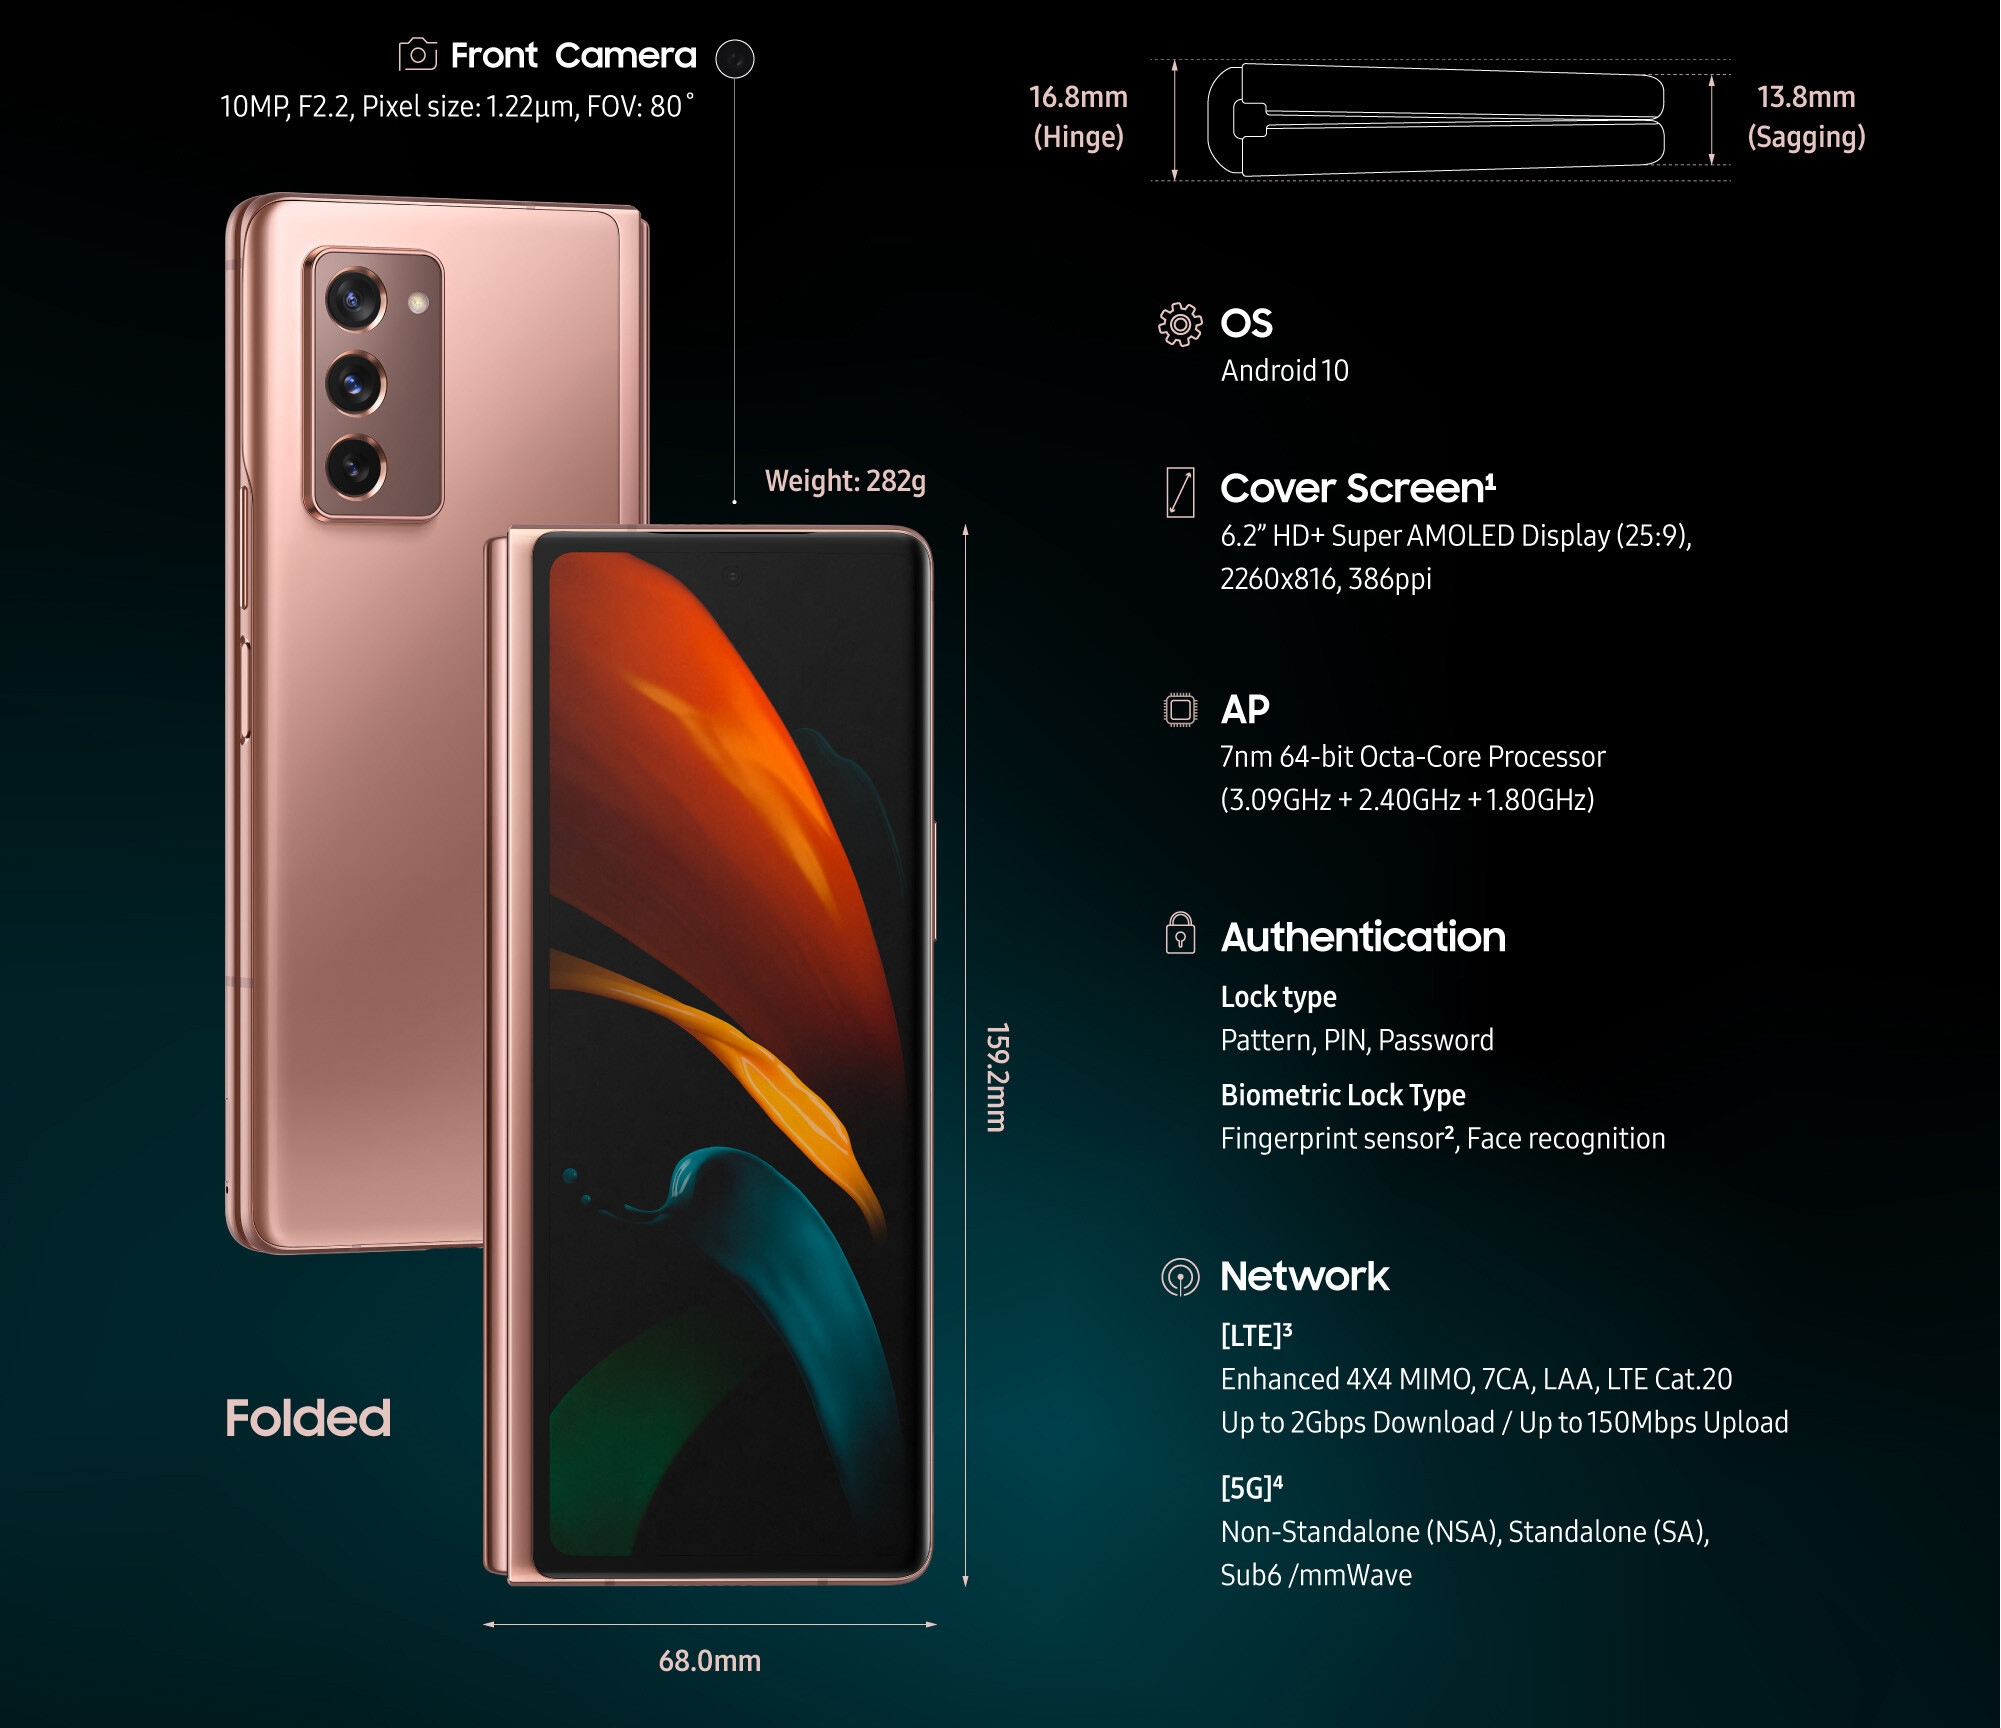 The Galaxy Z Fold 2 5g Specs Price And Release Date Are Official 120hz Display 1999 Phonearena